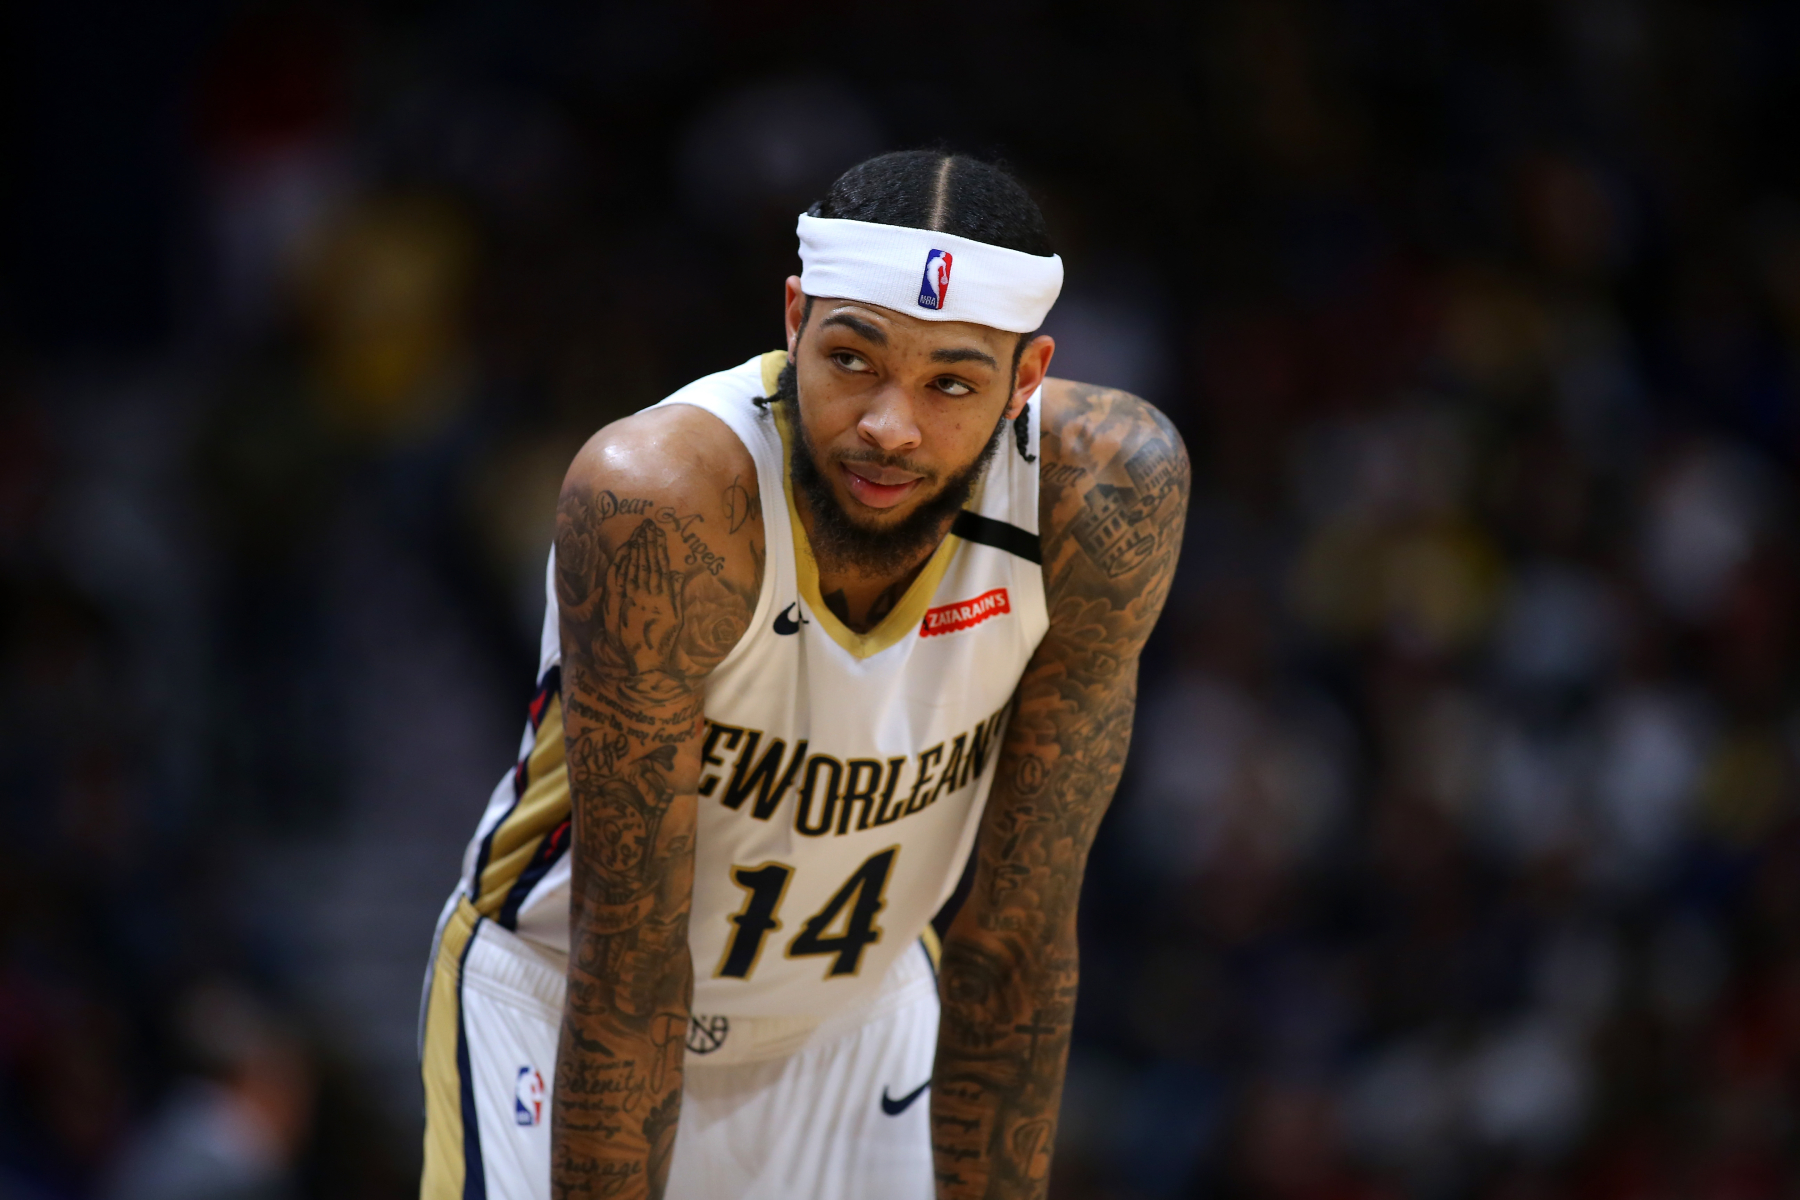 Brandon Ingram has become a star for the New Orleans Pelicans. He is set to get a massive contract soon, but he already has a nice net worth.